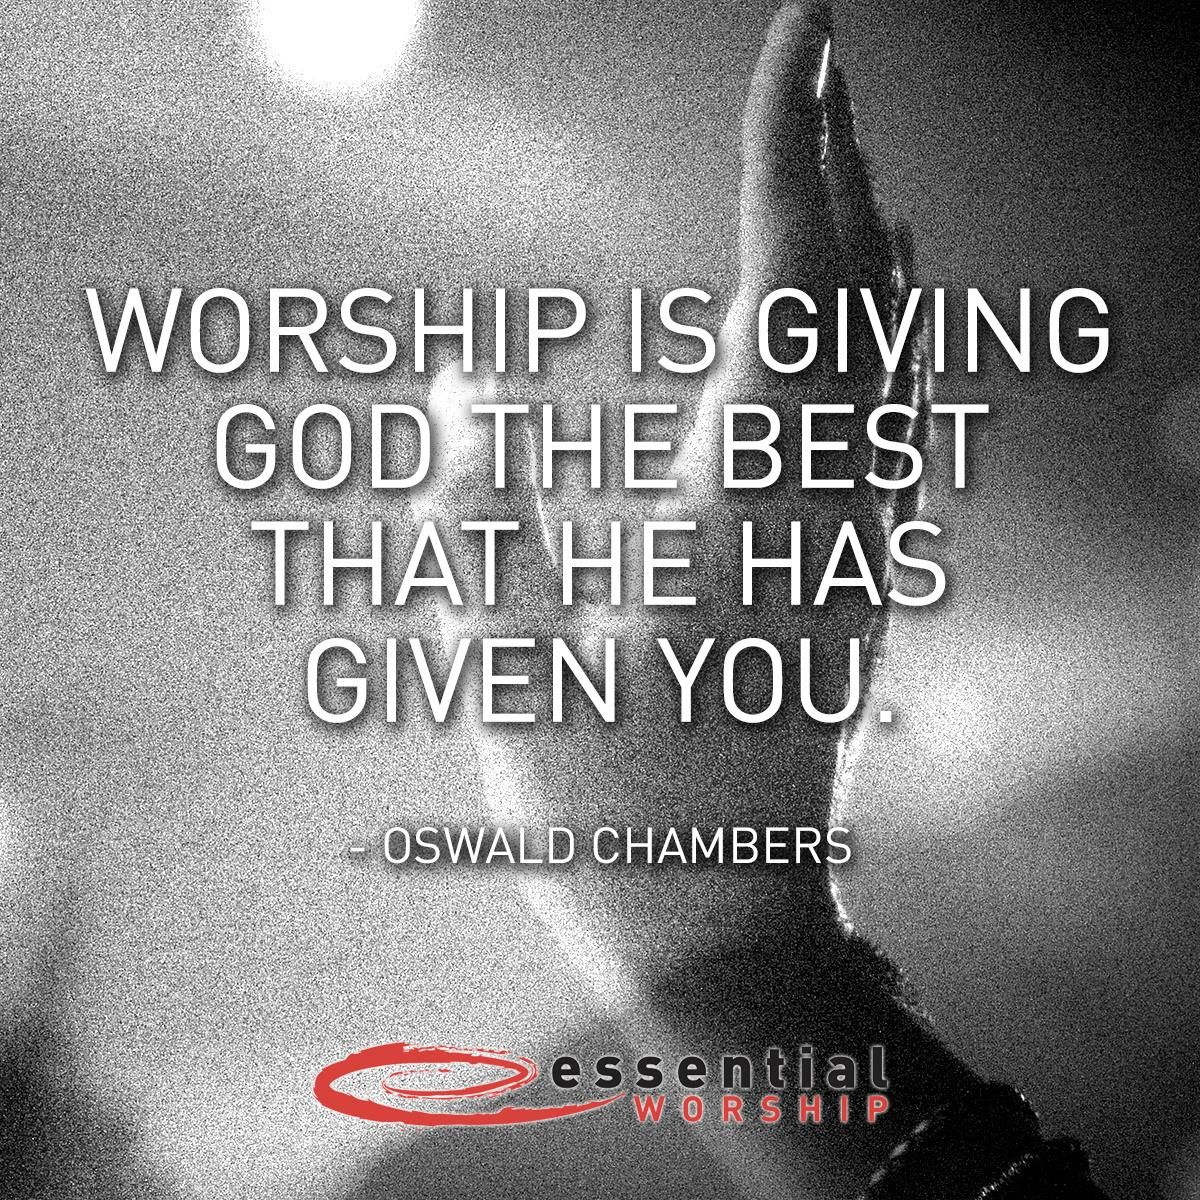 Worship is giving God the best that He has given you